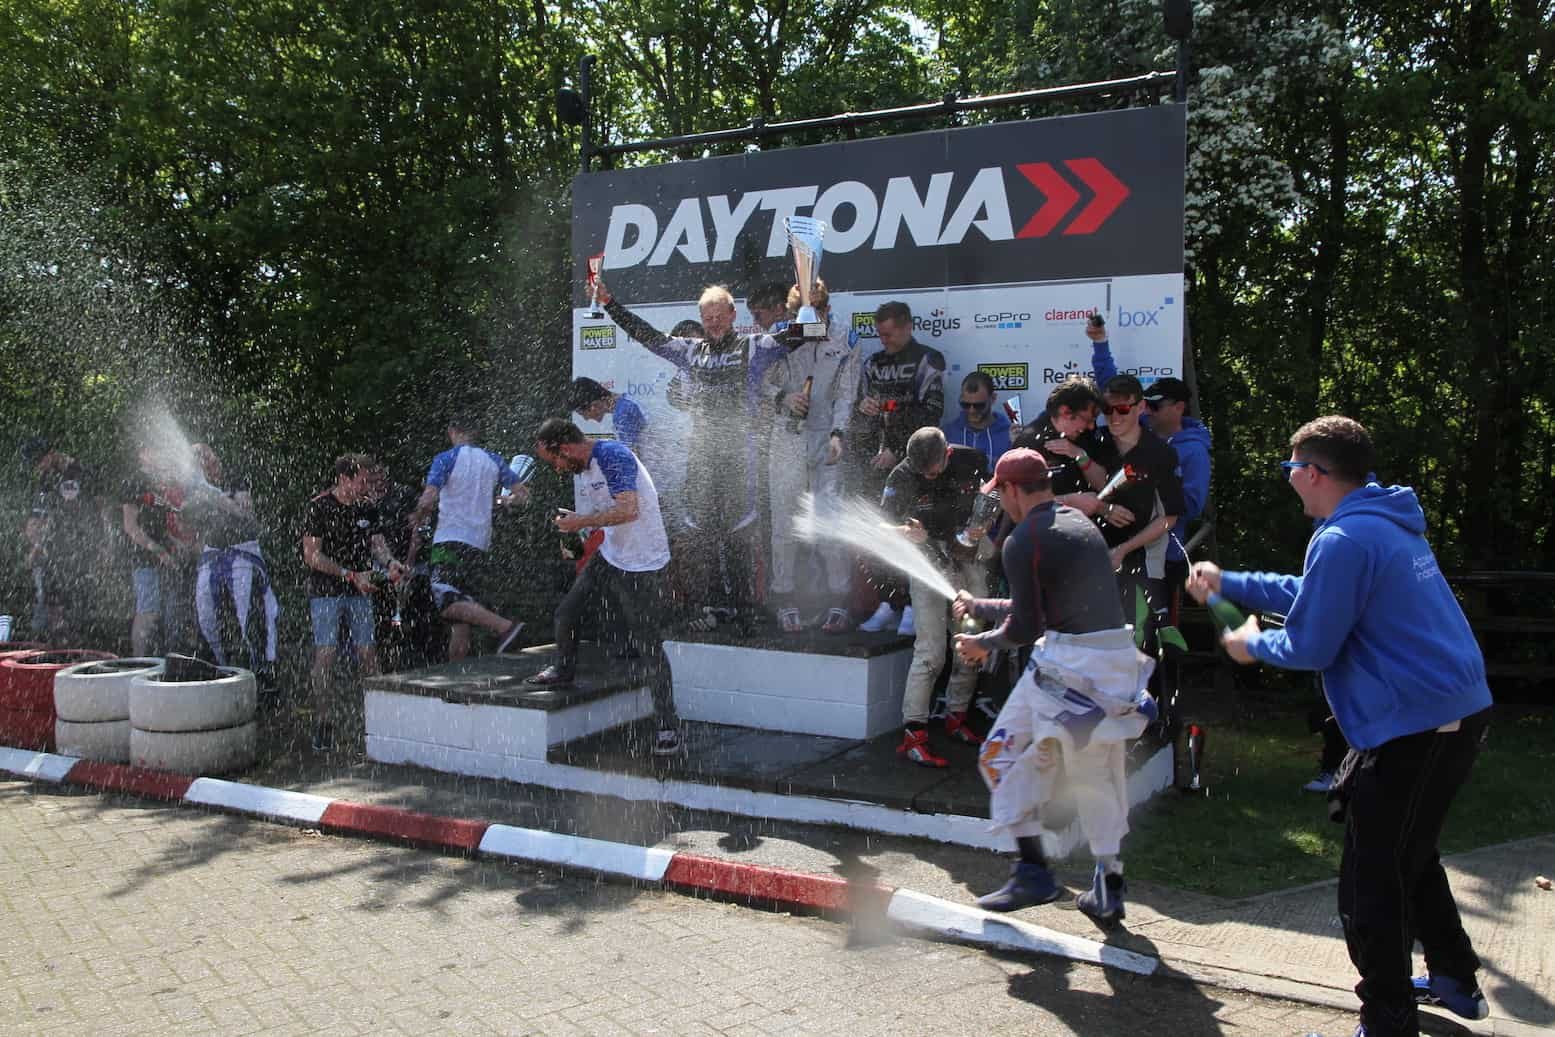 Tamworth Go Karting >> Karting at Daytona – the UK's Premier Karting Tracks : Karting at Daytona